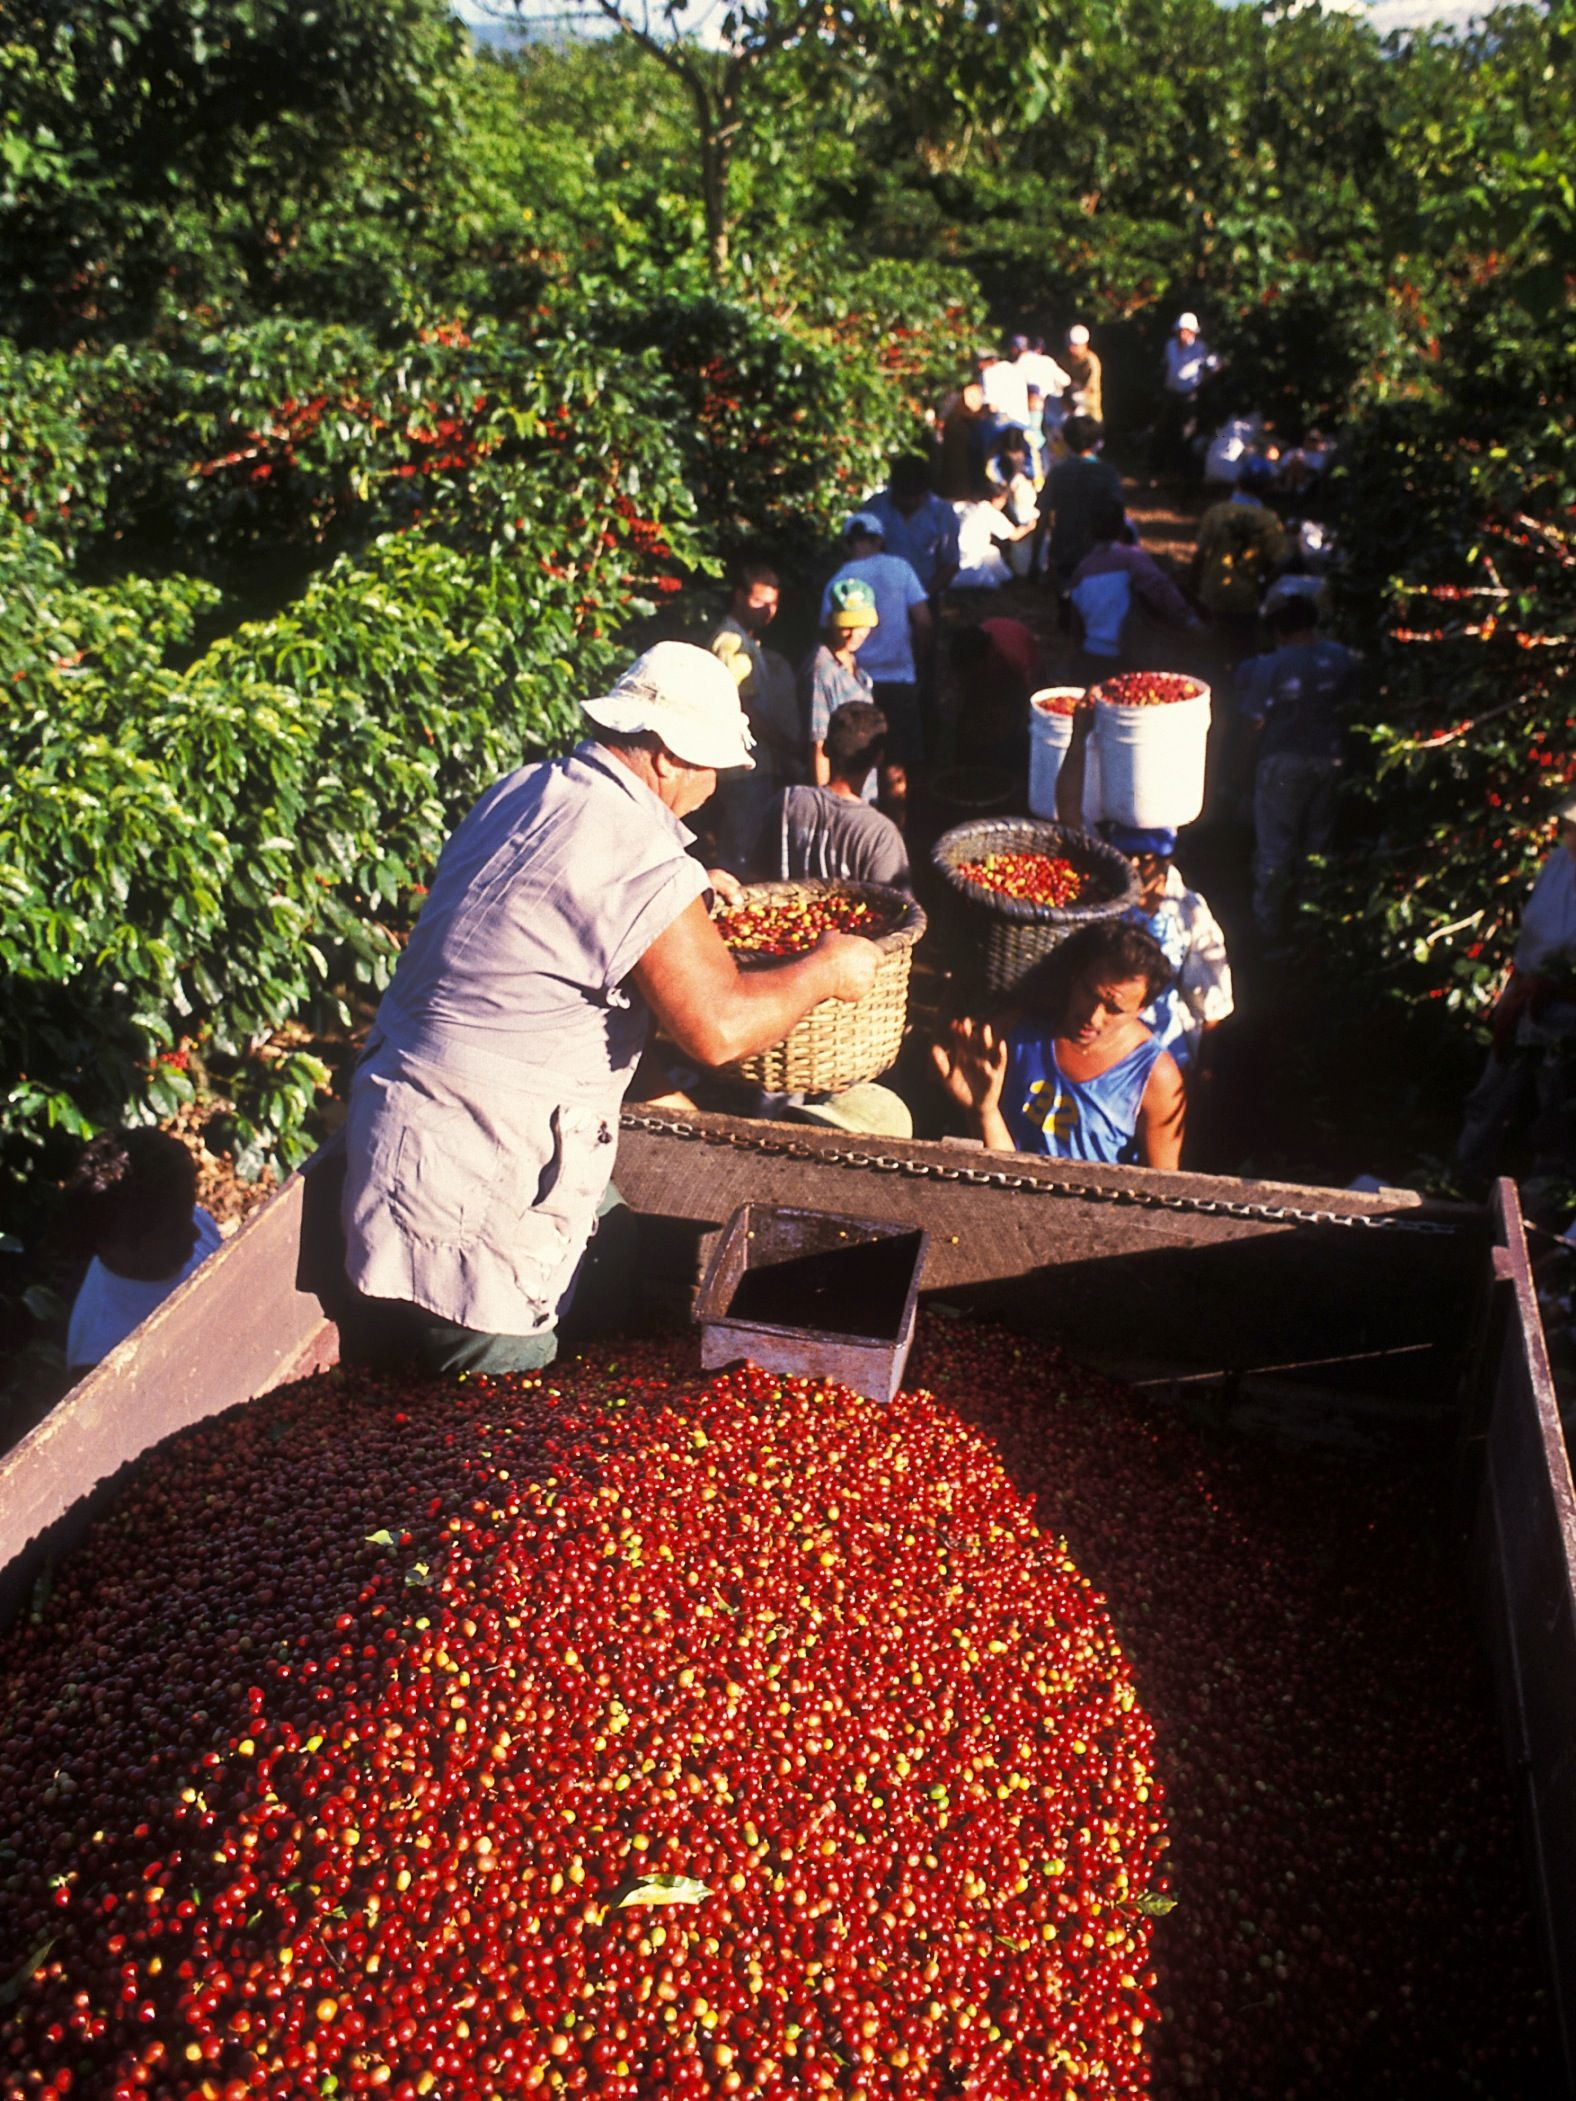 Coffee region - Costa Rica has a tradition of exporting one of the best coffees in the world. #coffee #coffeebeans